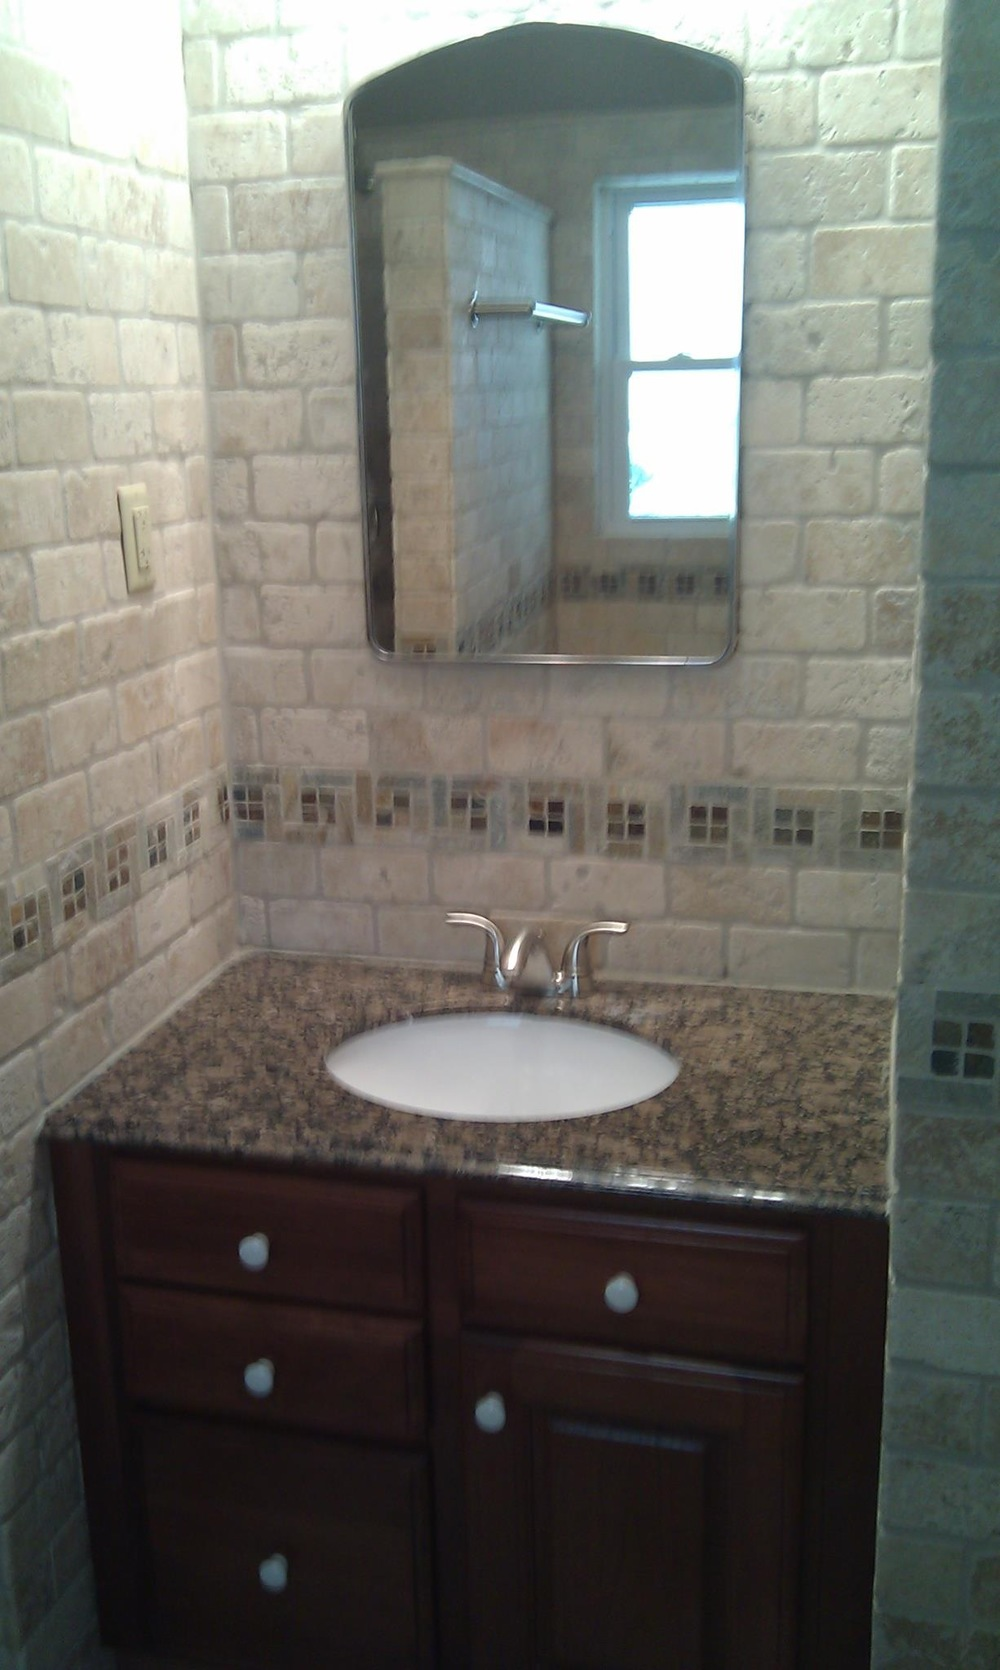 Mix our travertine with our granite vanity tops